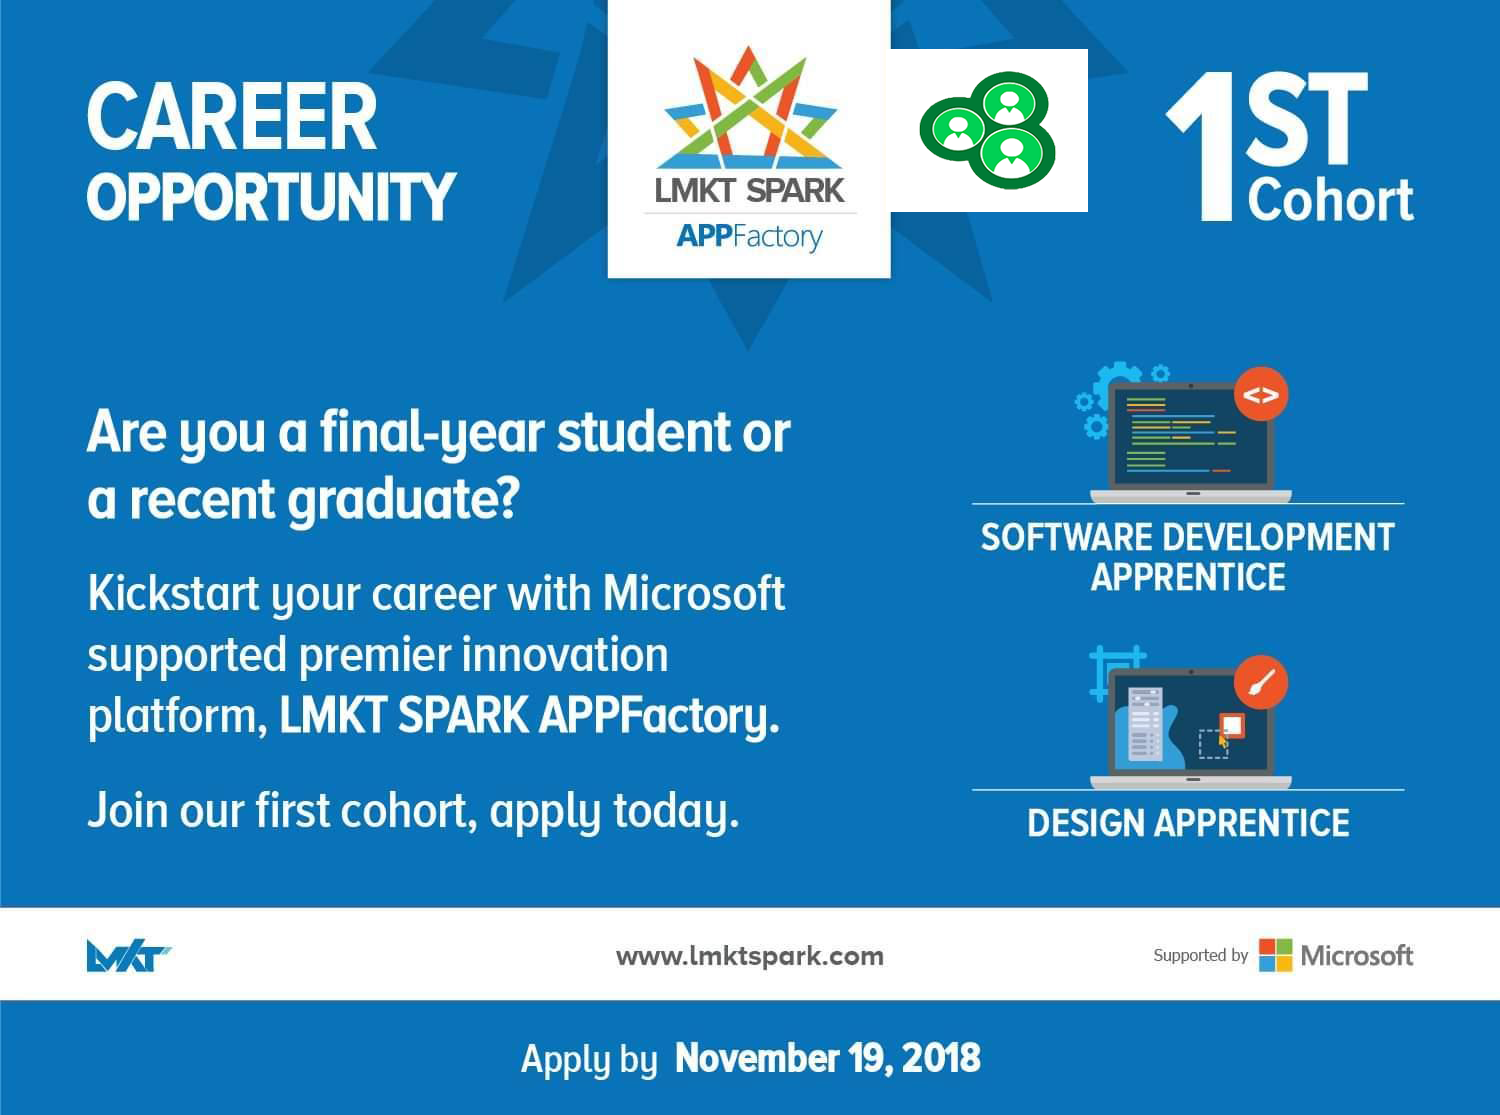 microsoft supported lmkt spark appfactory providing oppurtunities to